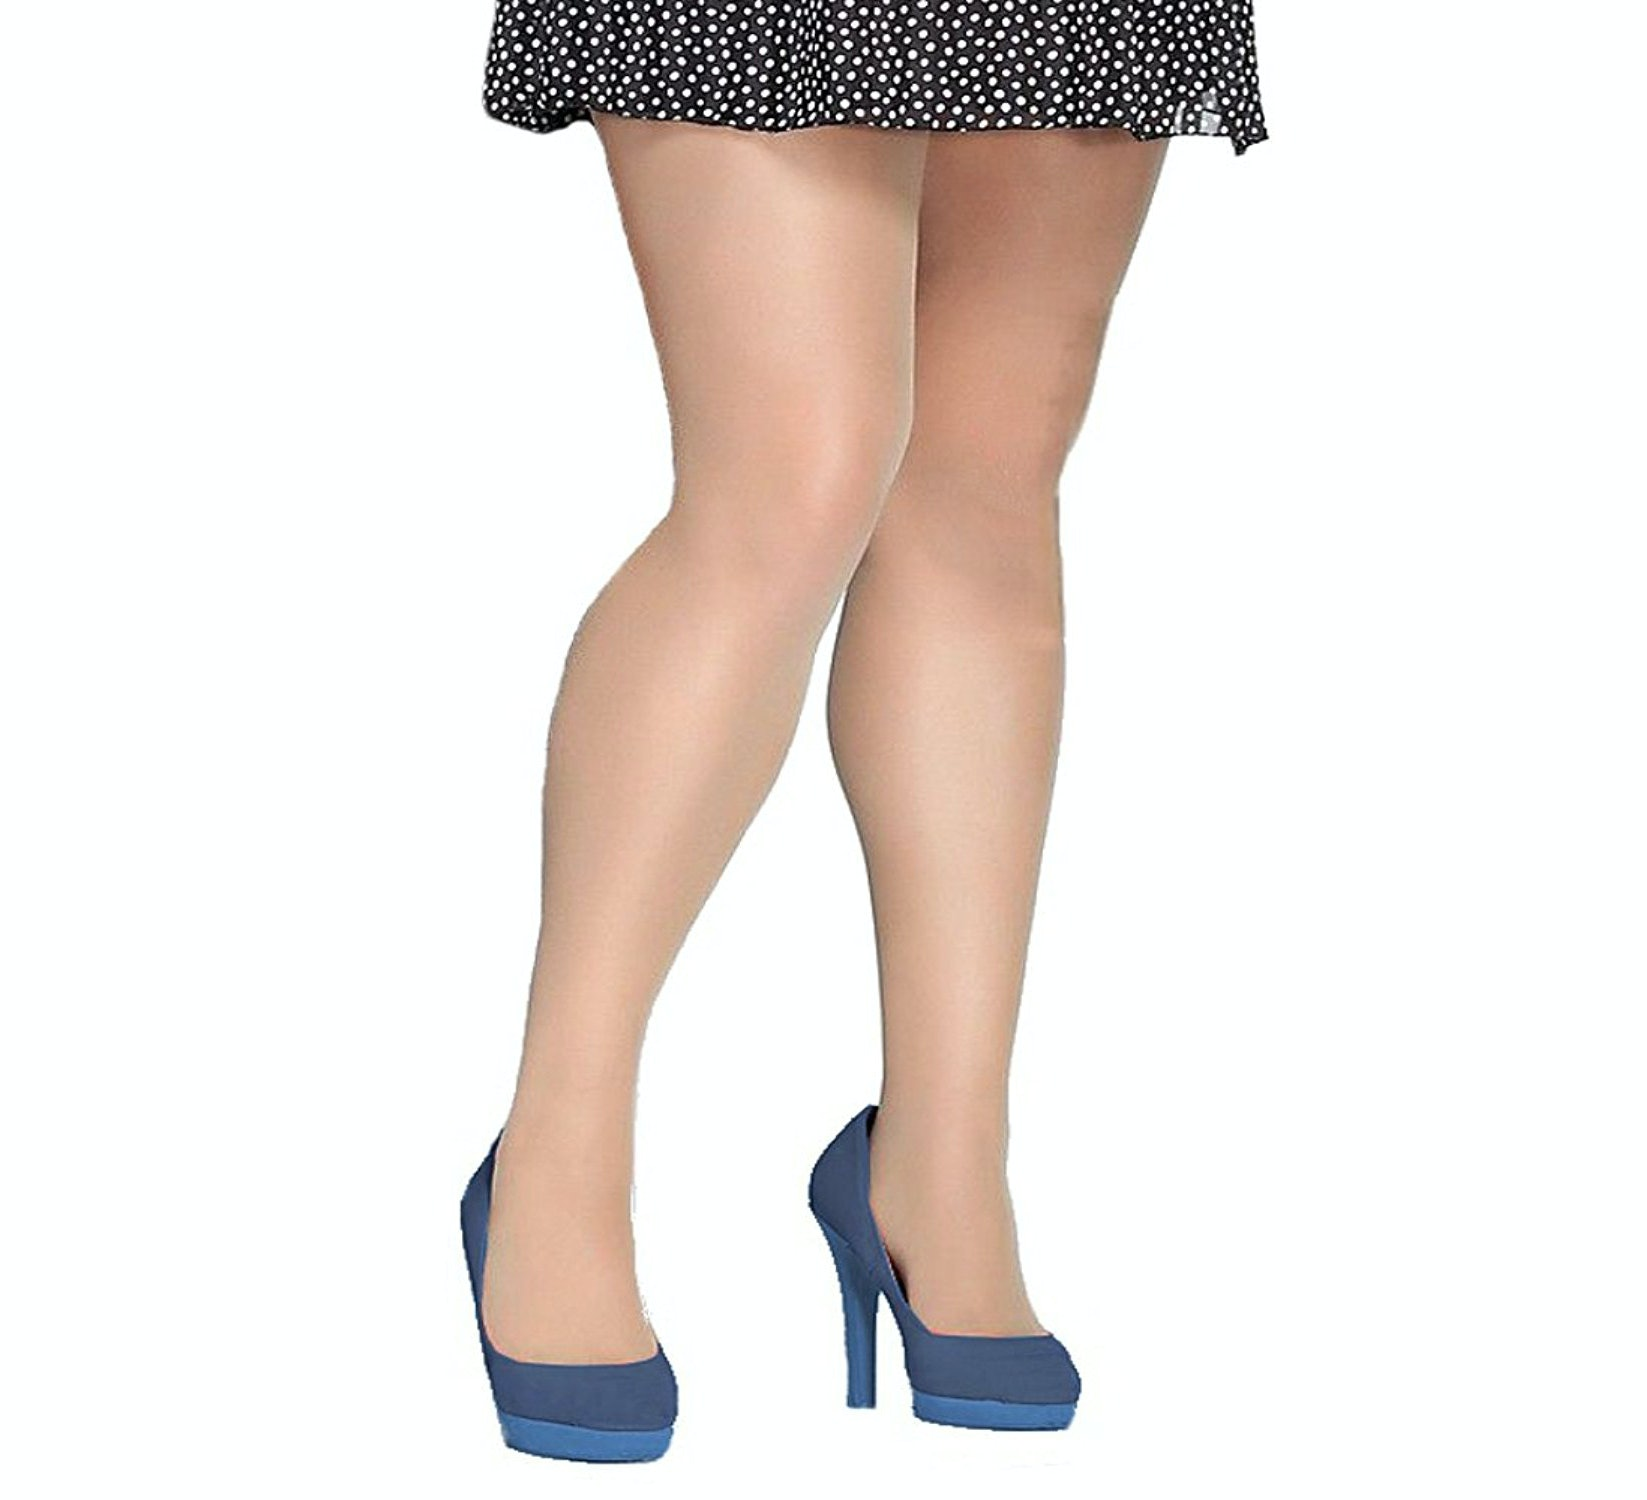 08ebeb088cb The 12 Best Plus Size Tights That Won t Slip Down